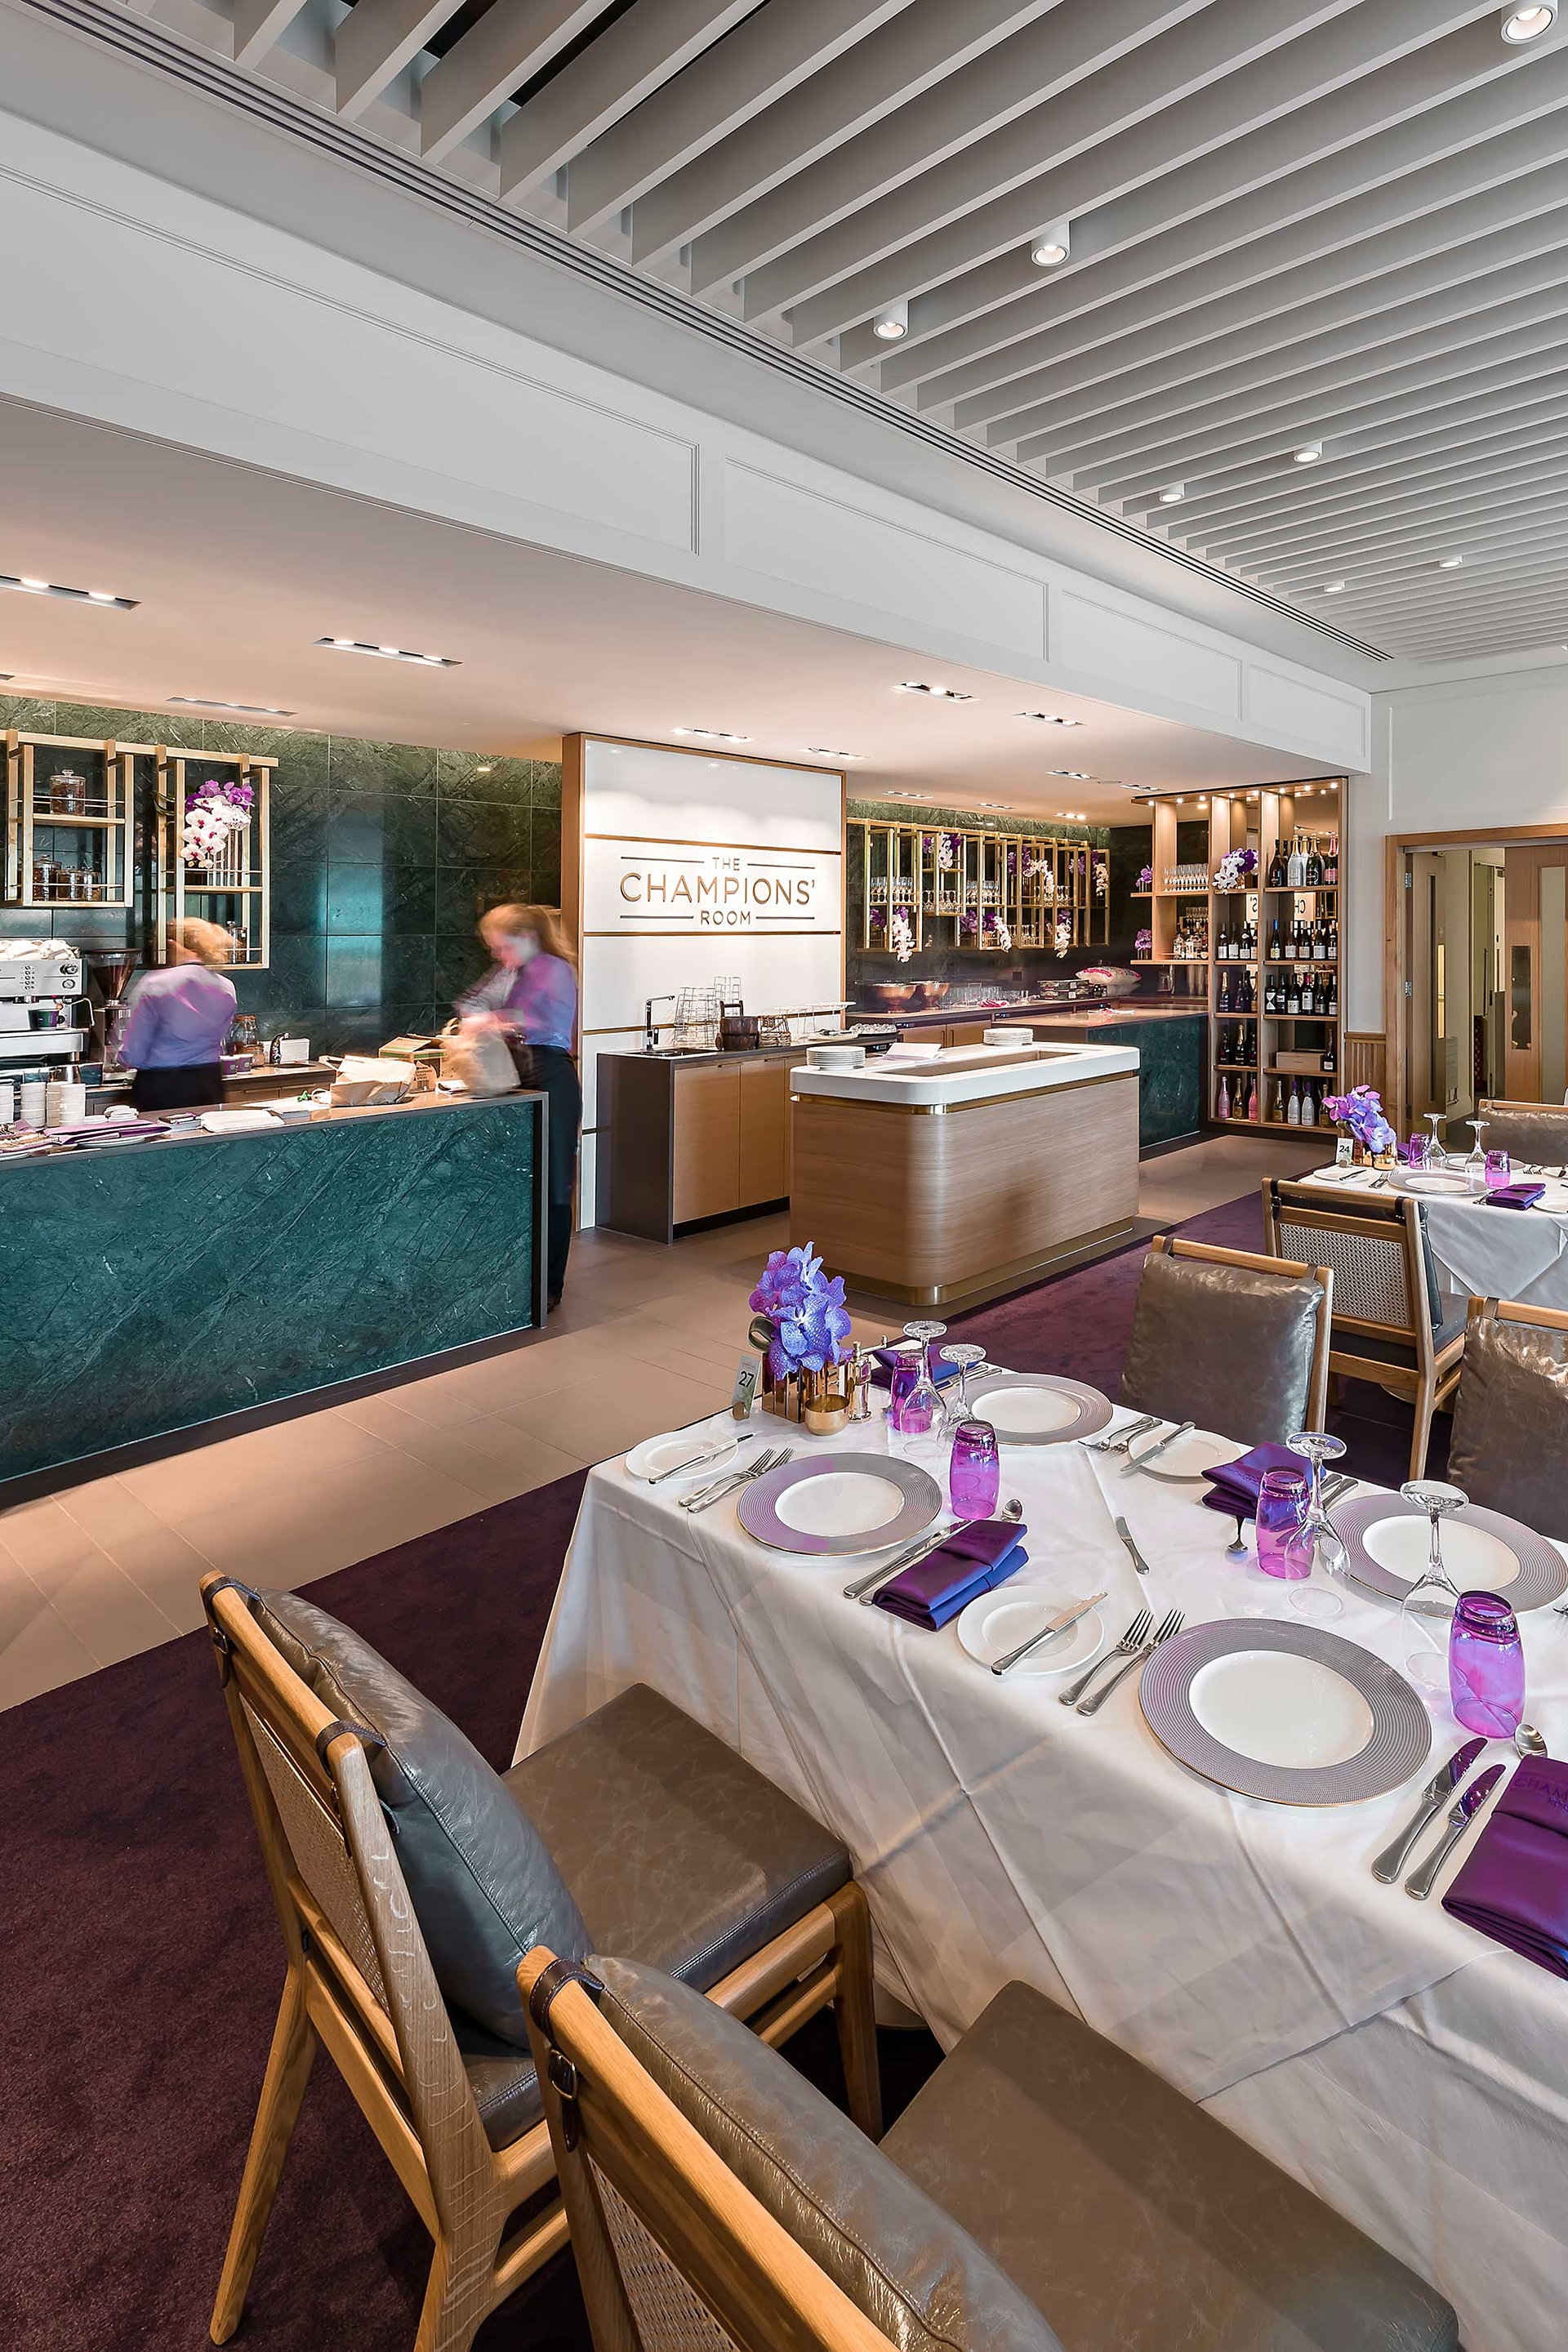 Champions Room Restaurant at Wimbledon by SHH